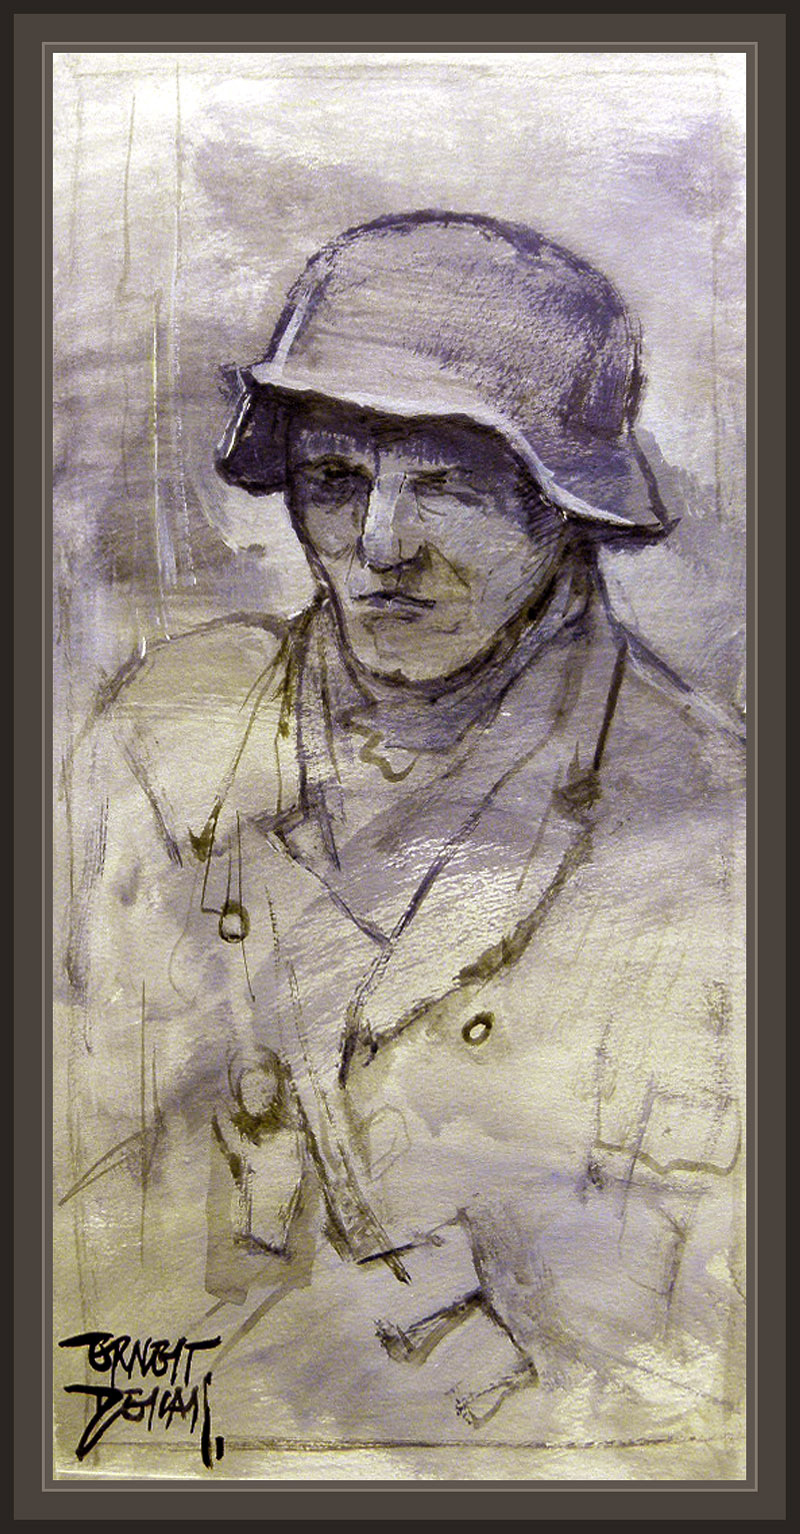 GERMAN SOLDIERS-WW2-GERMANY-ART-PINTURA-ARTE-SOLDADOS-ALEMANIA-PINTOR-ERNEST DESCALS